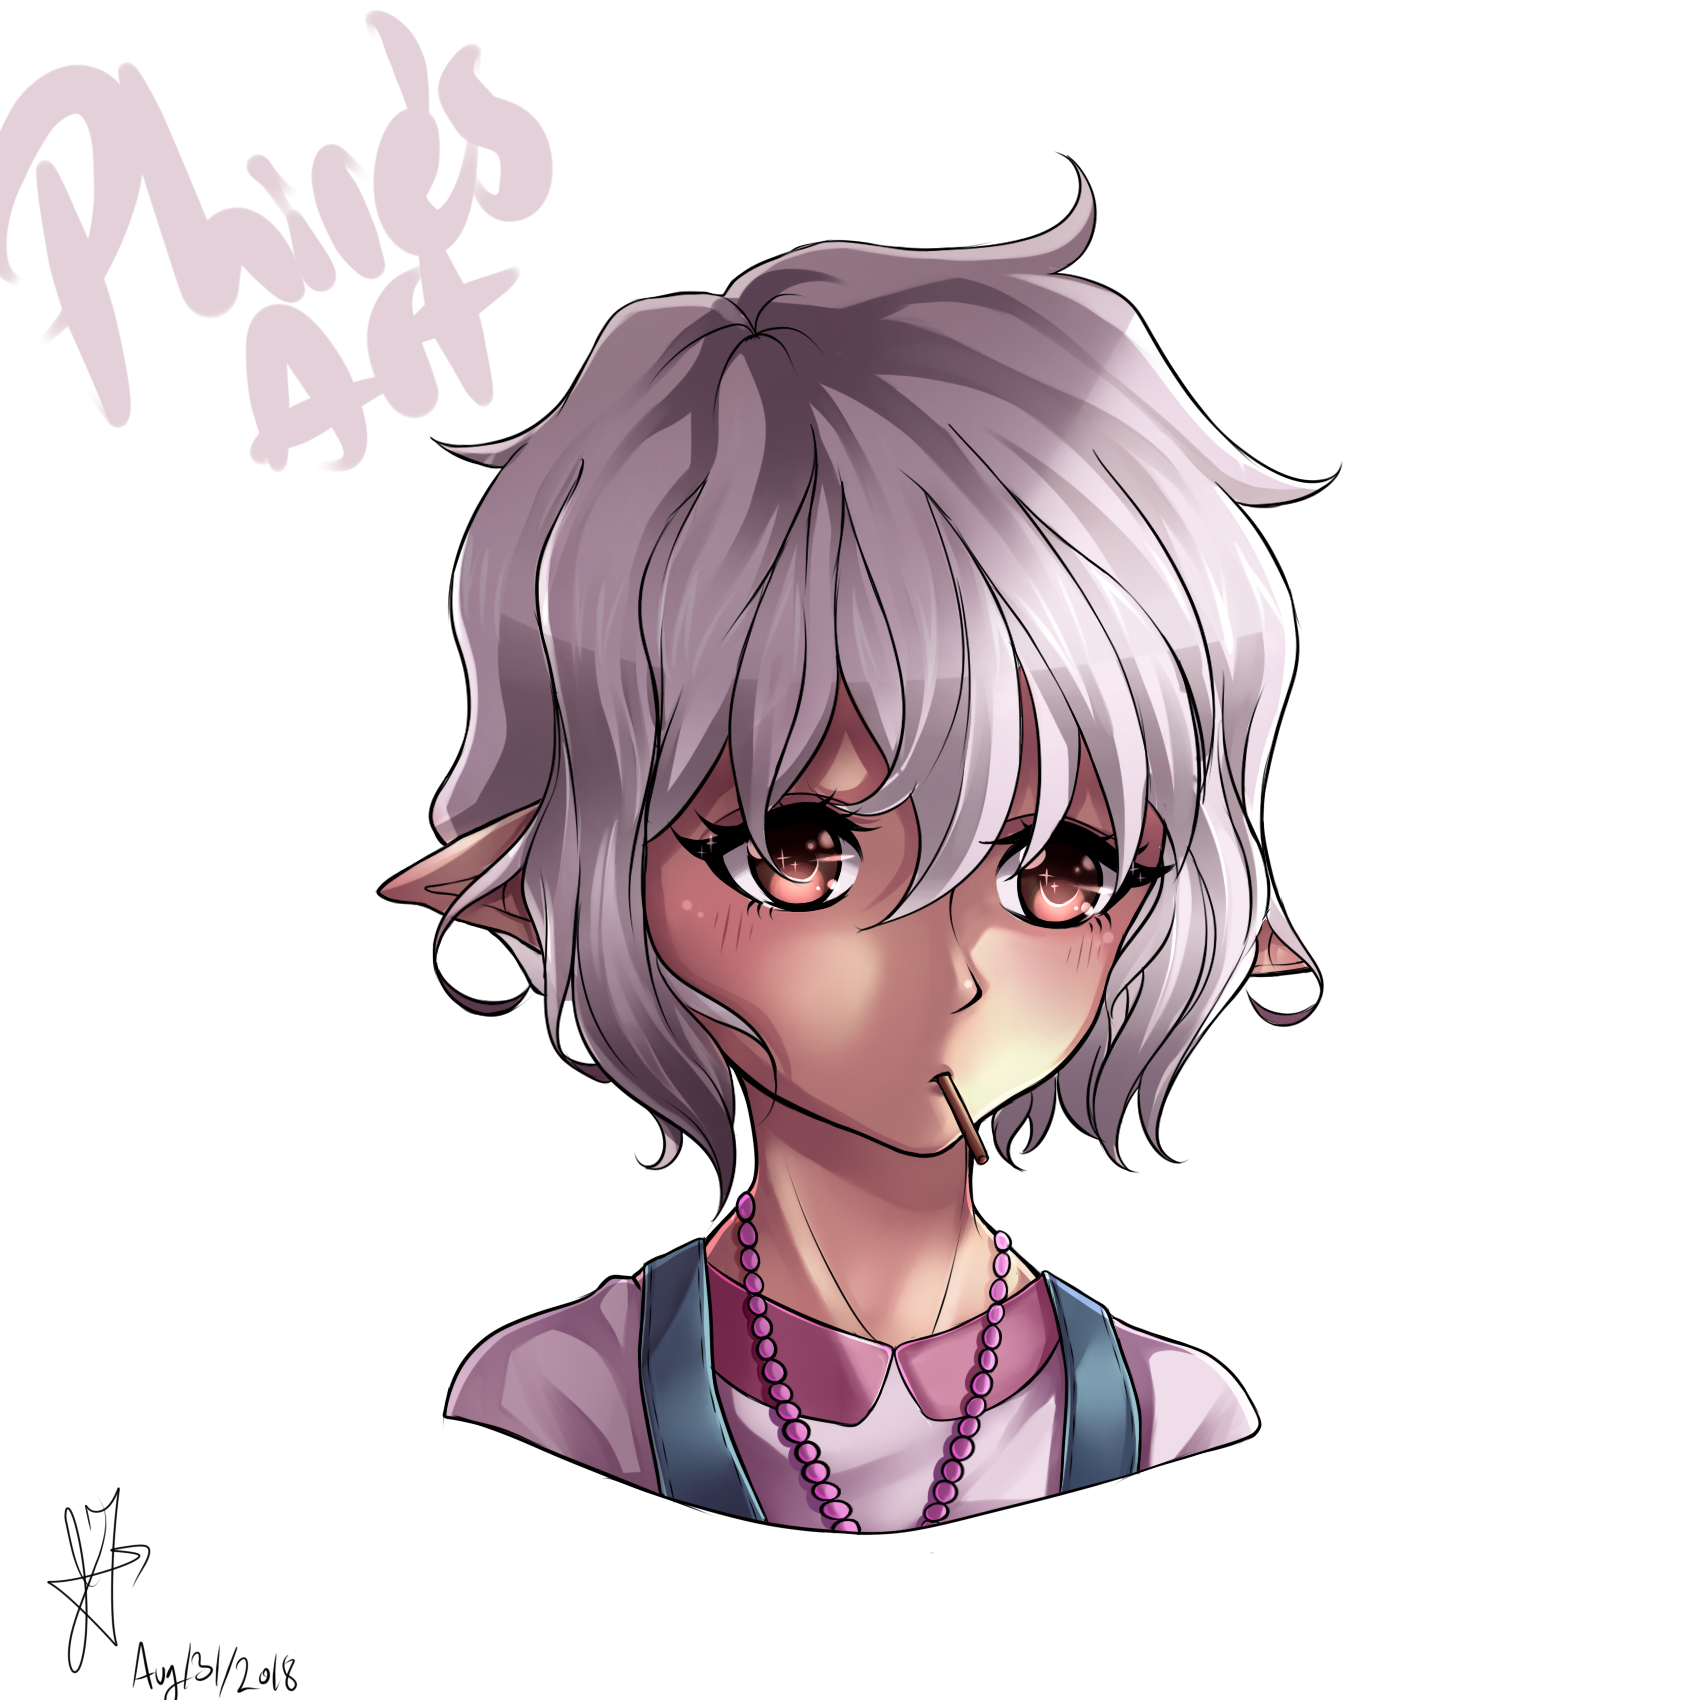 alysons_commission_of_her_mabinogi_character_by_janepitt-dclogny.png